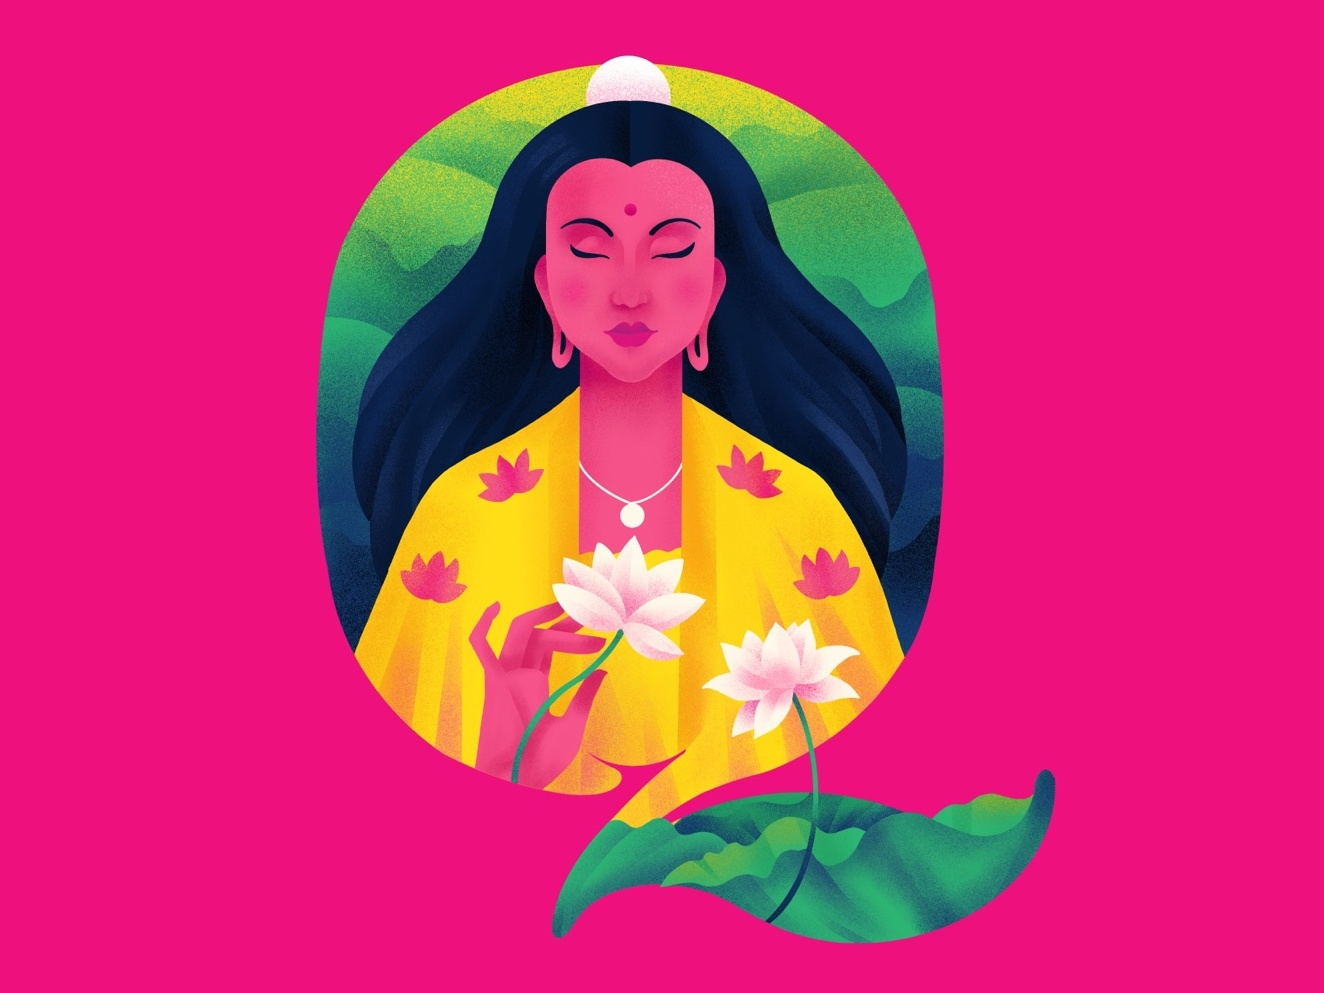 Q U A N   Y I N goddess lotus q 36daysoftype typography illustration